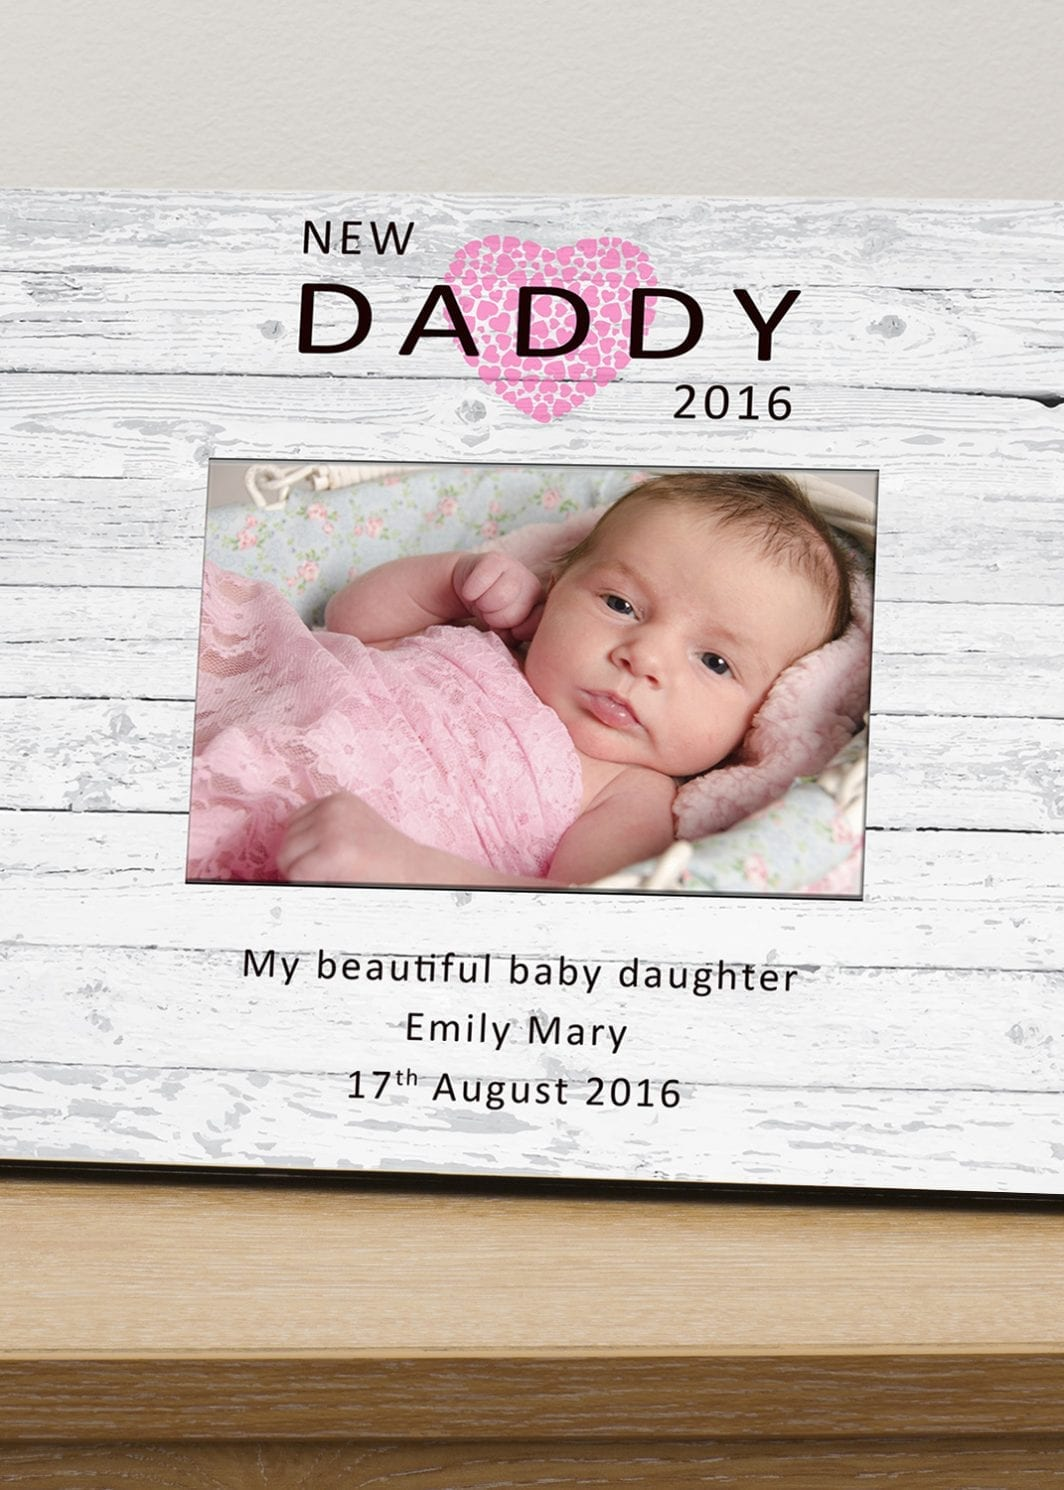 plushbarn personalised gifts plush barn new baby picture frame for daddy